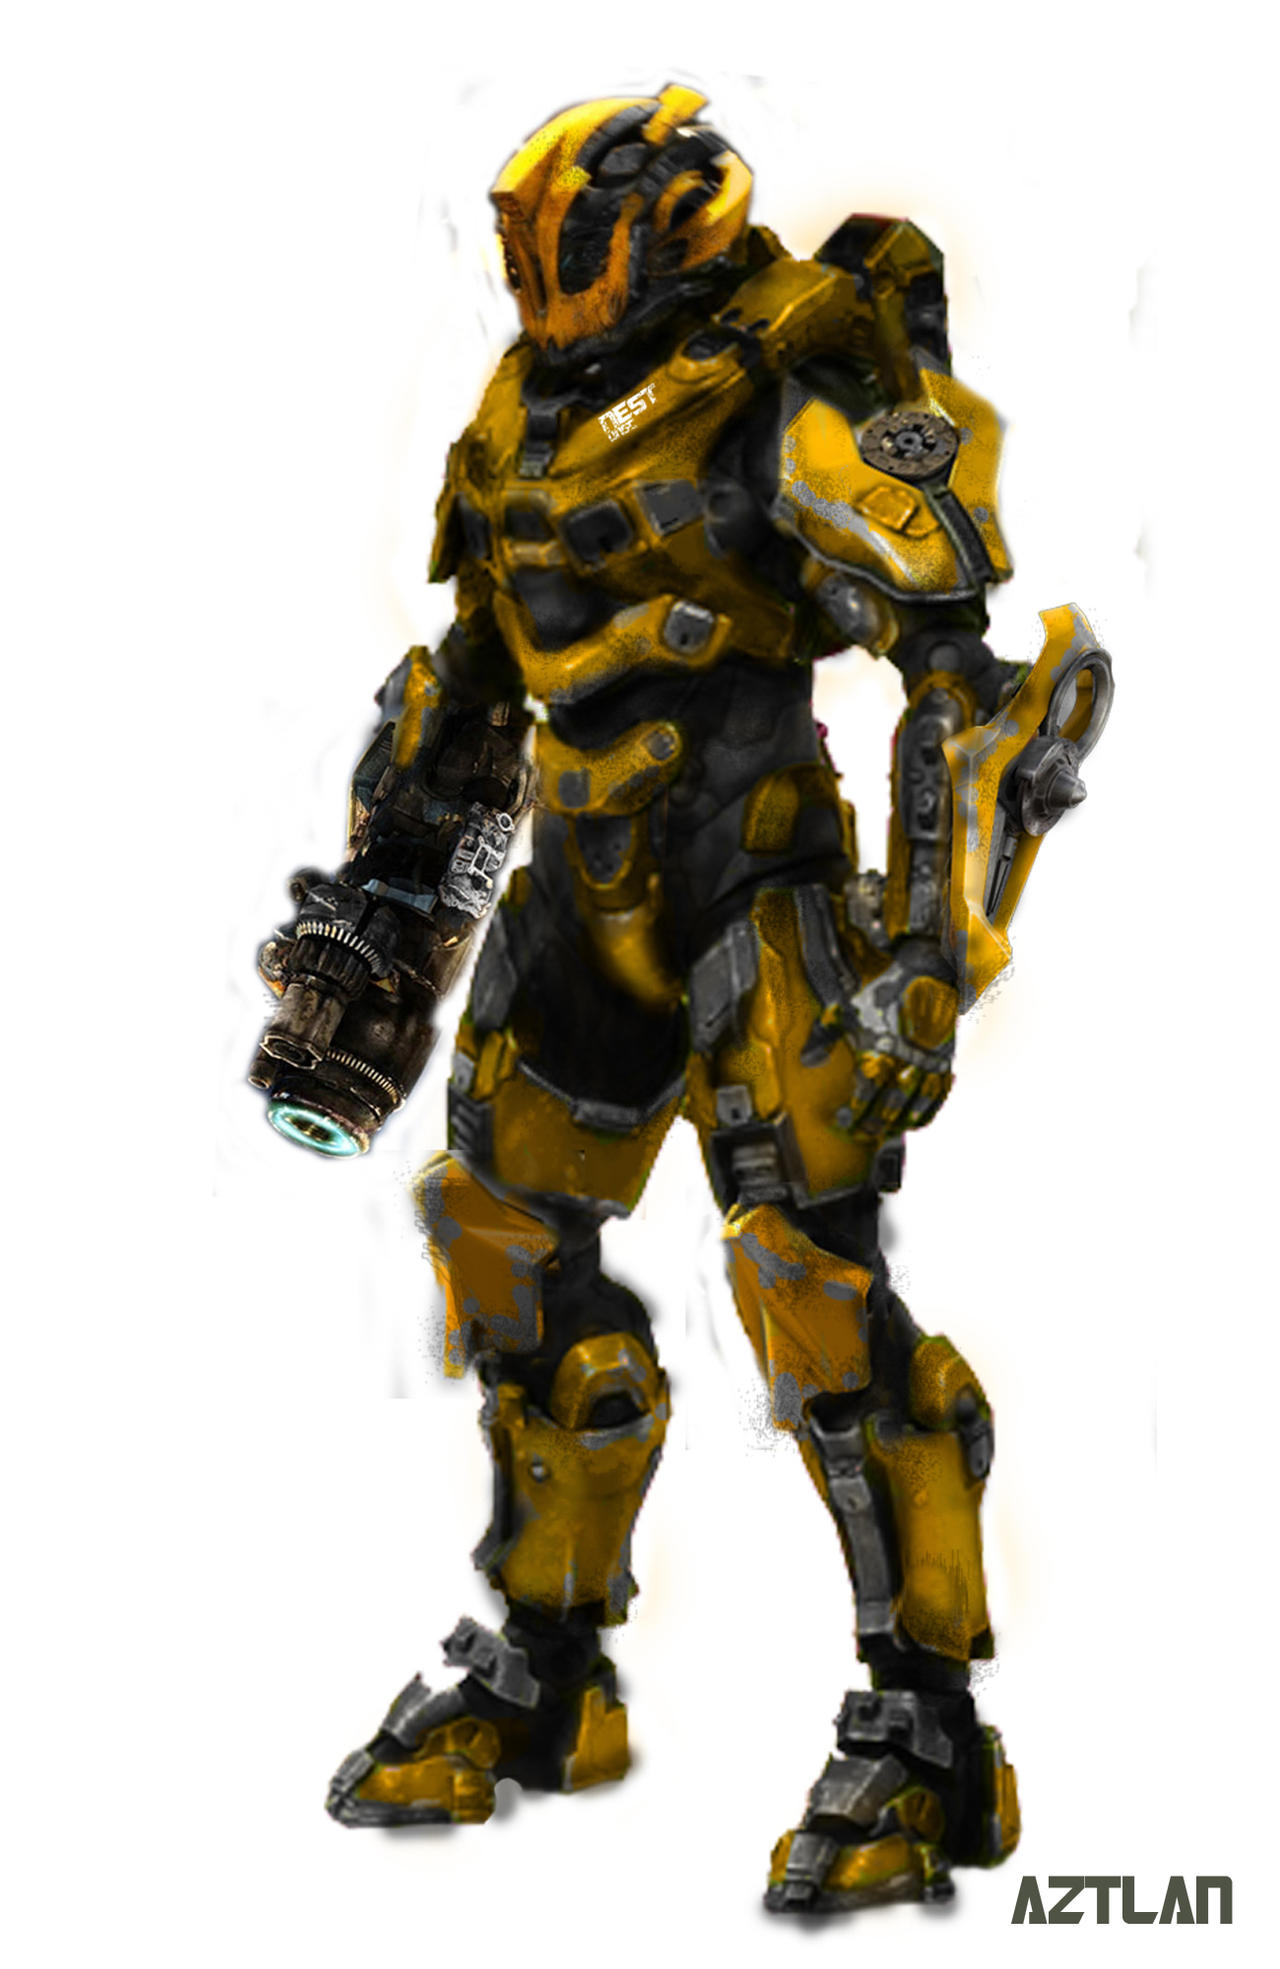 Halo 4 - Bumblebee by AZTLANN